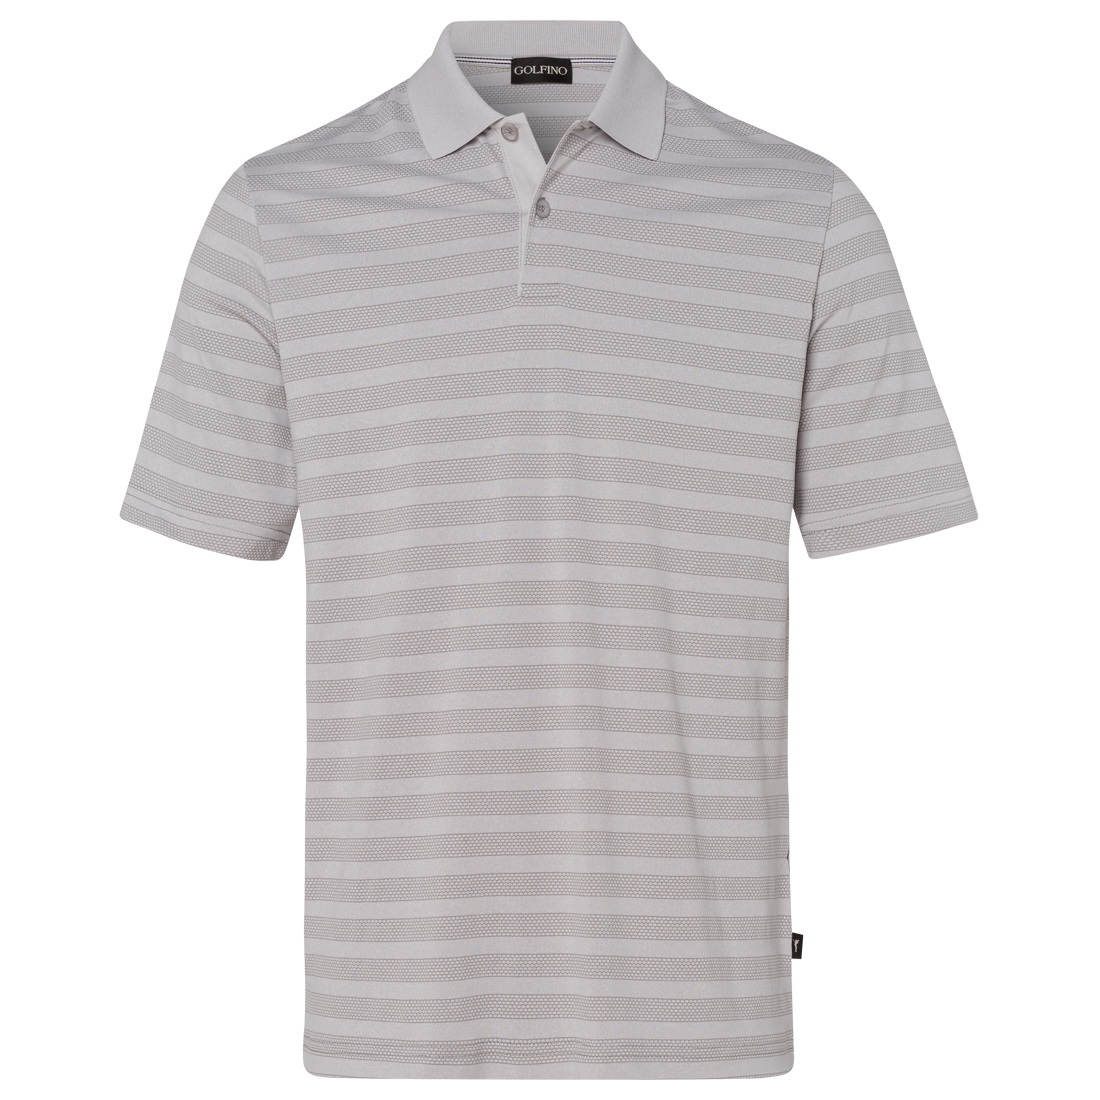 Men's golf polo, pleasantly light and breathable